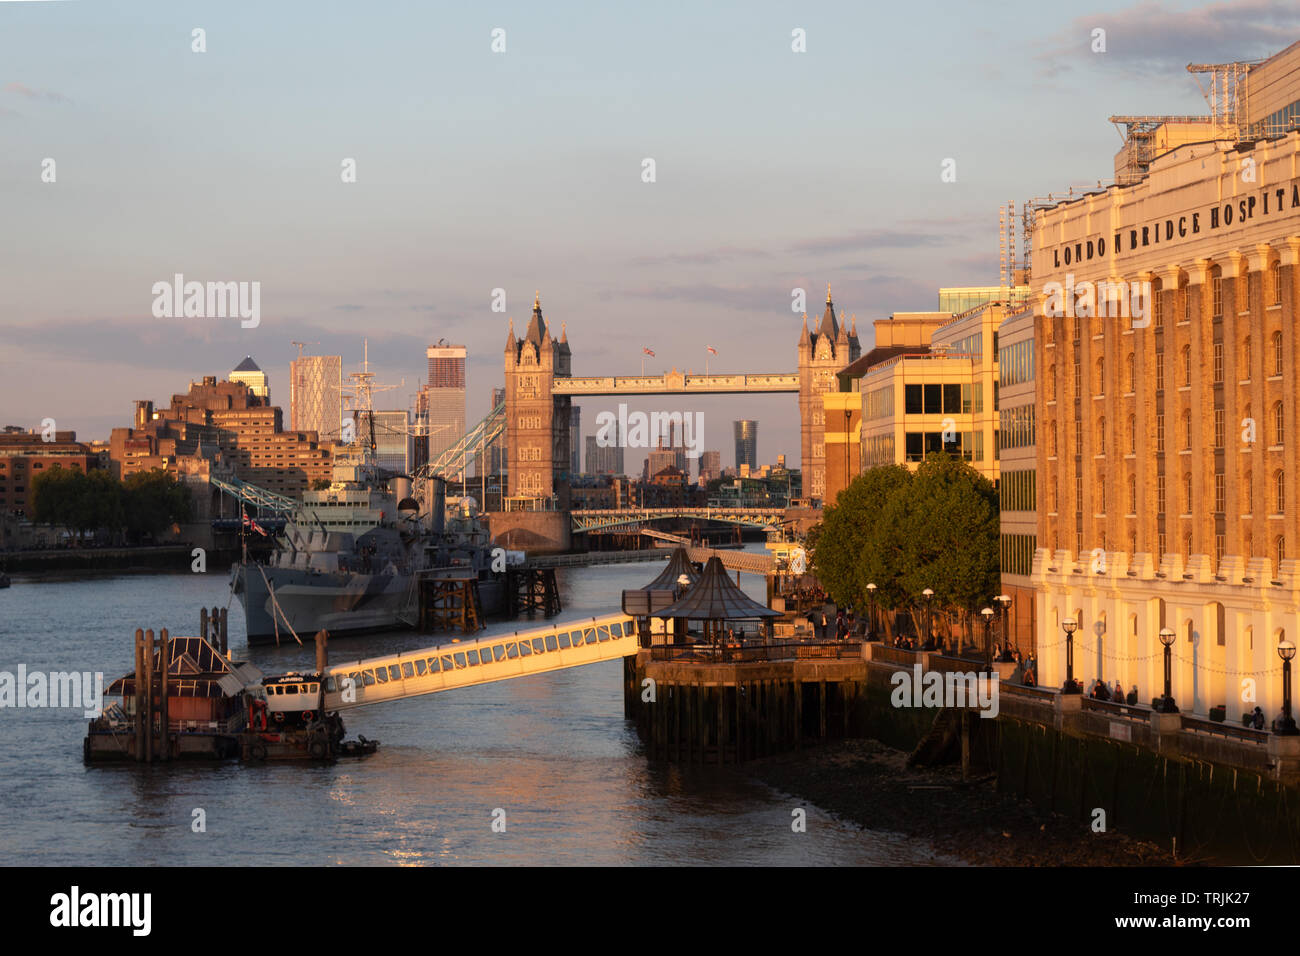 Tower Bridge, London, in the evening - Stock Image